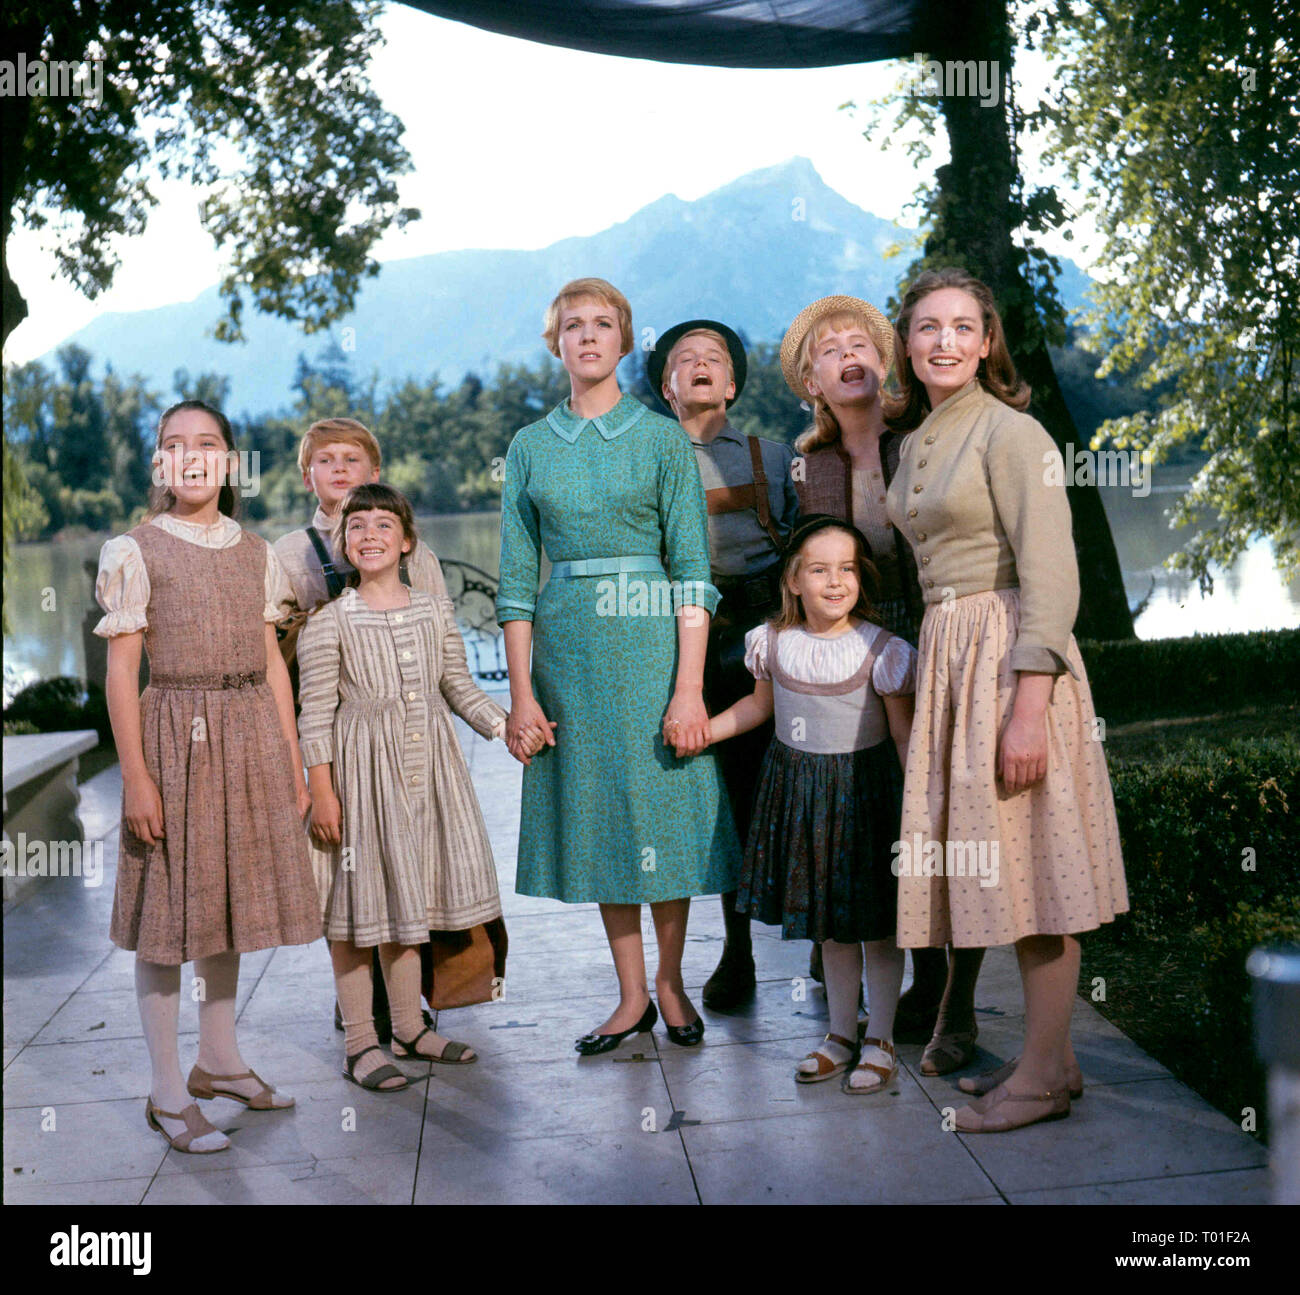 THE SOUND OF MUSIC, HEATHER MENZIES, DUANE CHASE, DEBBIE TURNER, JULIE ANDREWS, NICHOLAS HAMMOND, KYM KARATH, ANGELA CARTWRIGHT , CHARMIAN CARR, 1965 - Stock Image